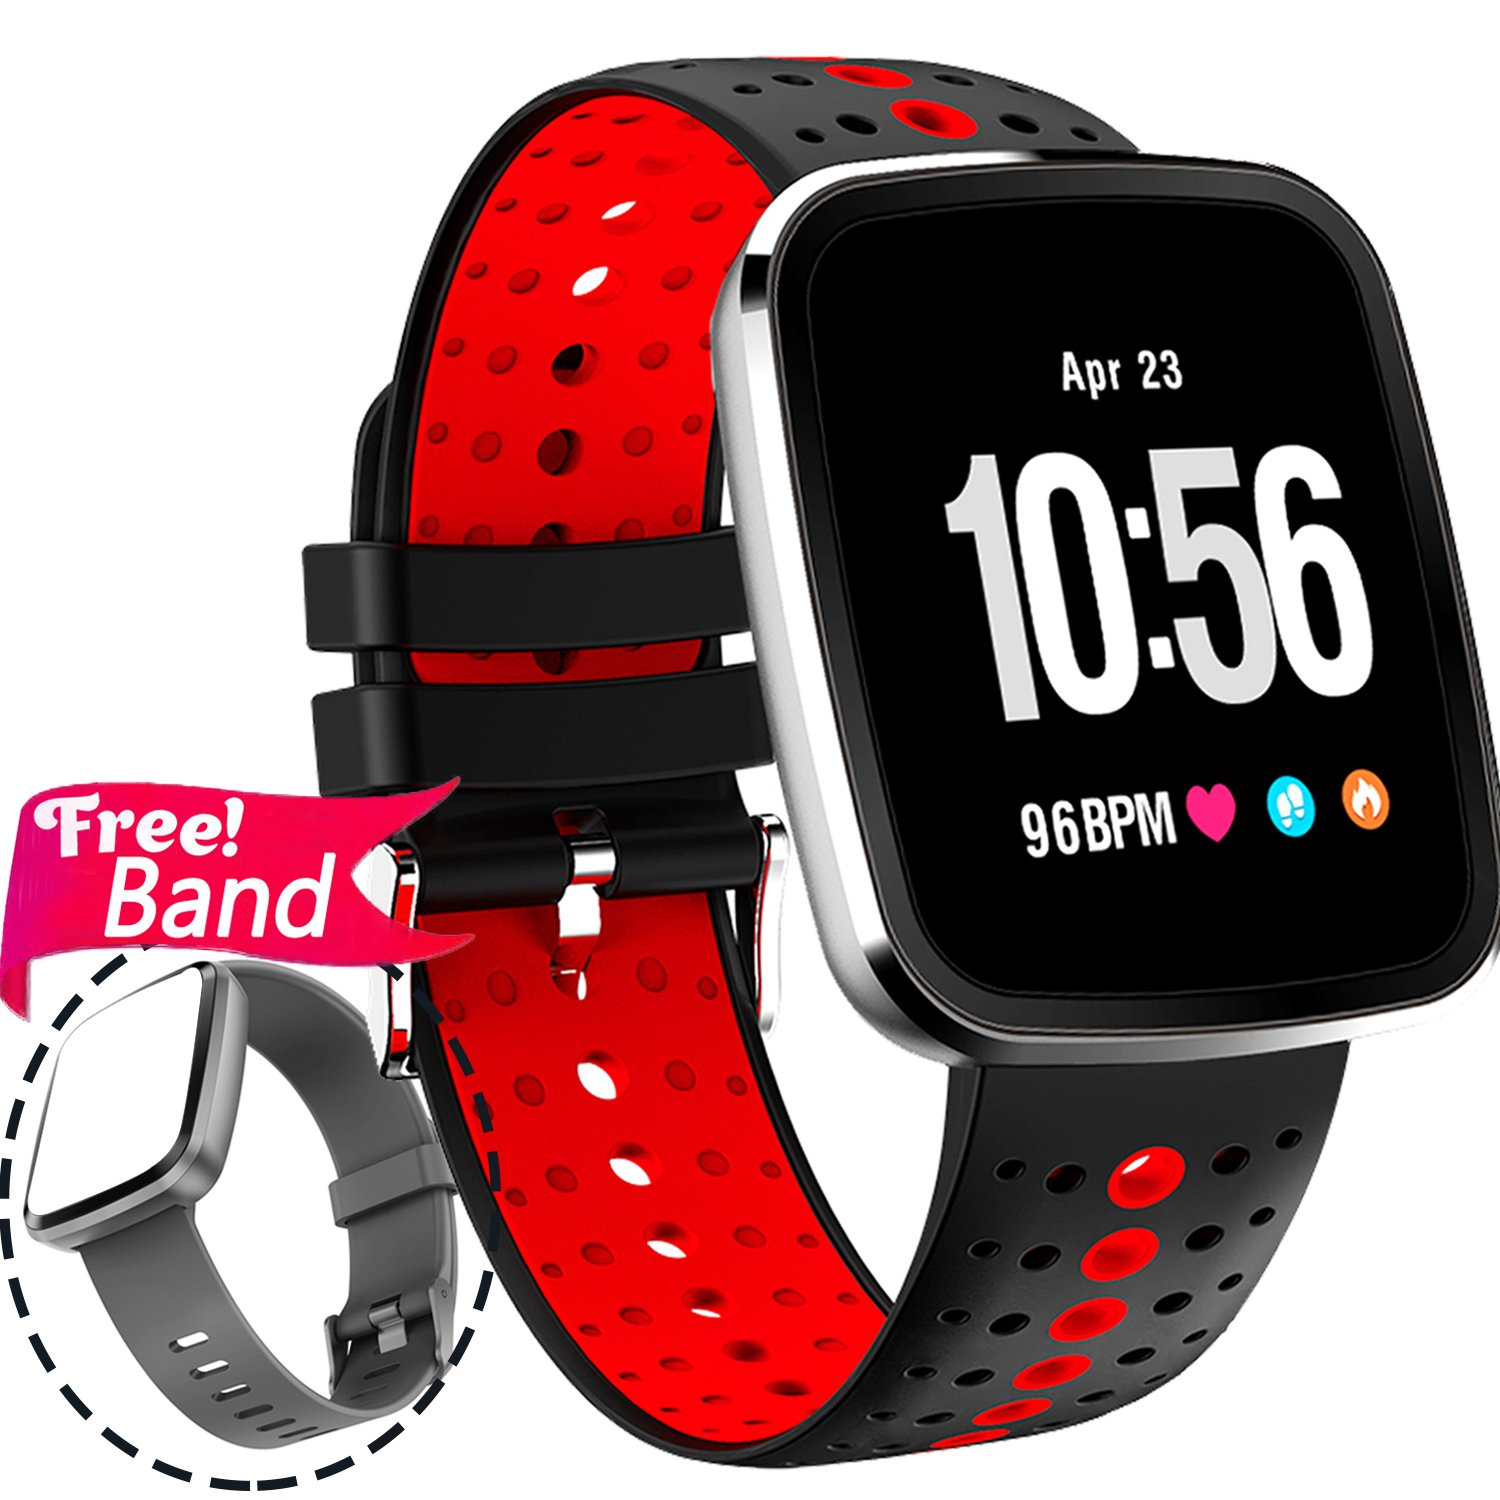 1.3'' Sport Fitness Tracker Smart Watch Heart Rate Monitor Blood Pressure for Women Men IP67 Waterproof Removable Smart Band Pedometer Activity Tracker Watch Health Monitor Summer Swim Run IOS Android